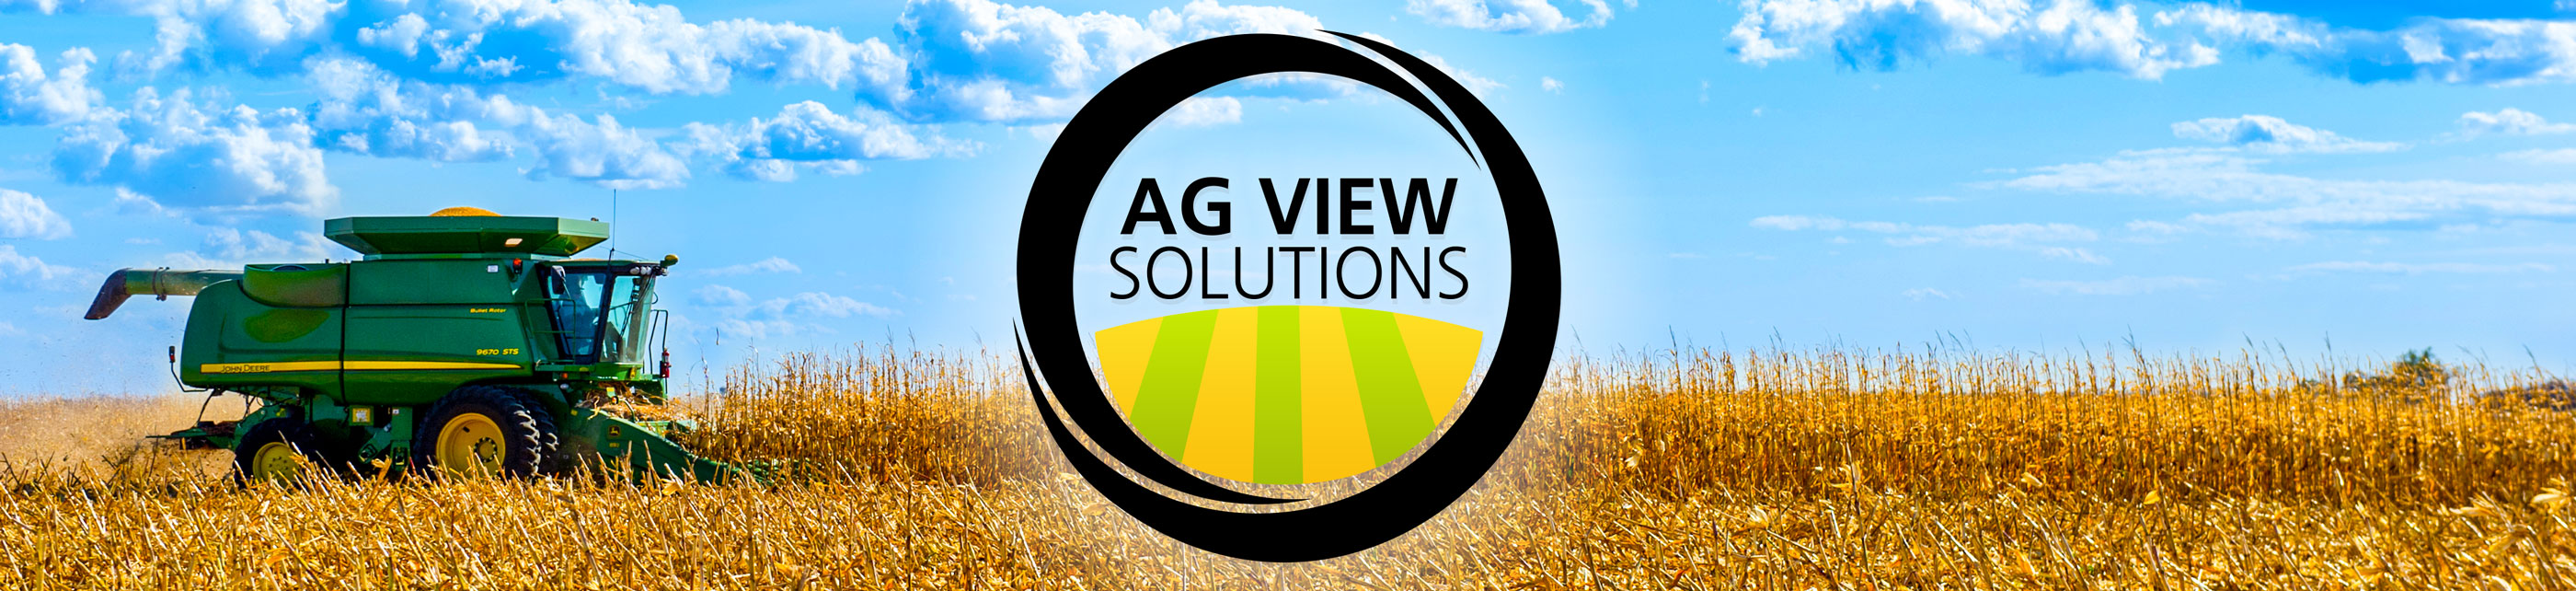 Ag View Solutions